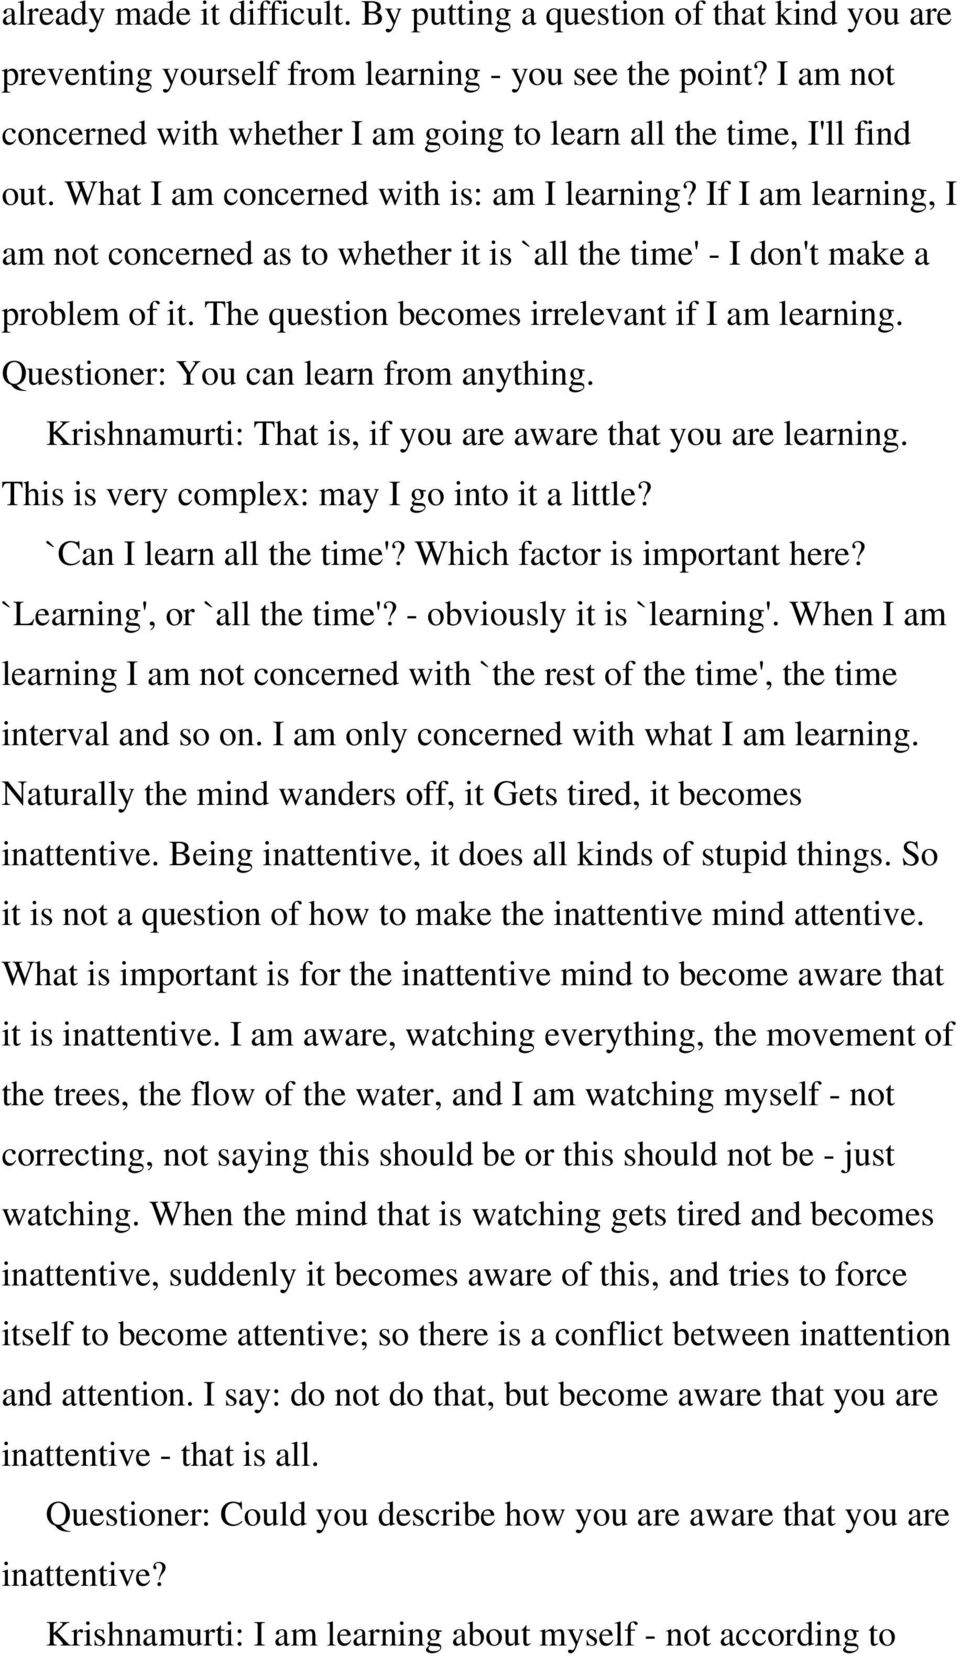 If I am learning, I am not concerned as to whether it is `all the time' - I don't make a problem of it. The question becomes irrelevant if I am learning. Questioner: You can learn from anything.